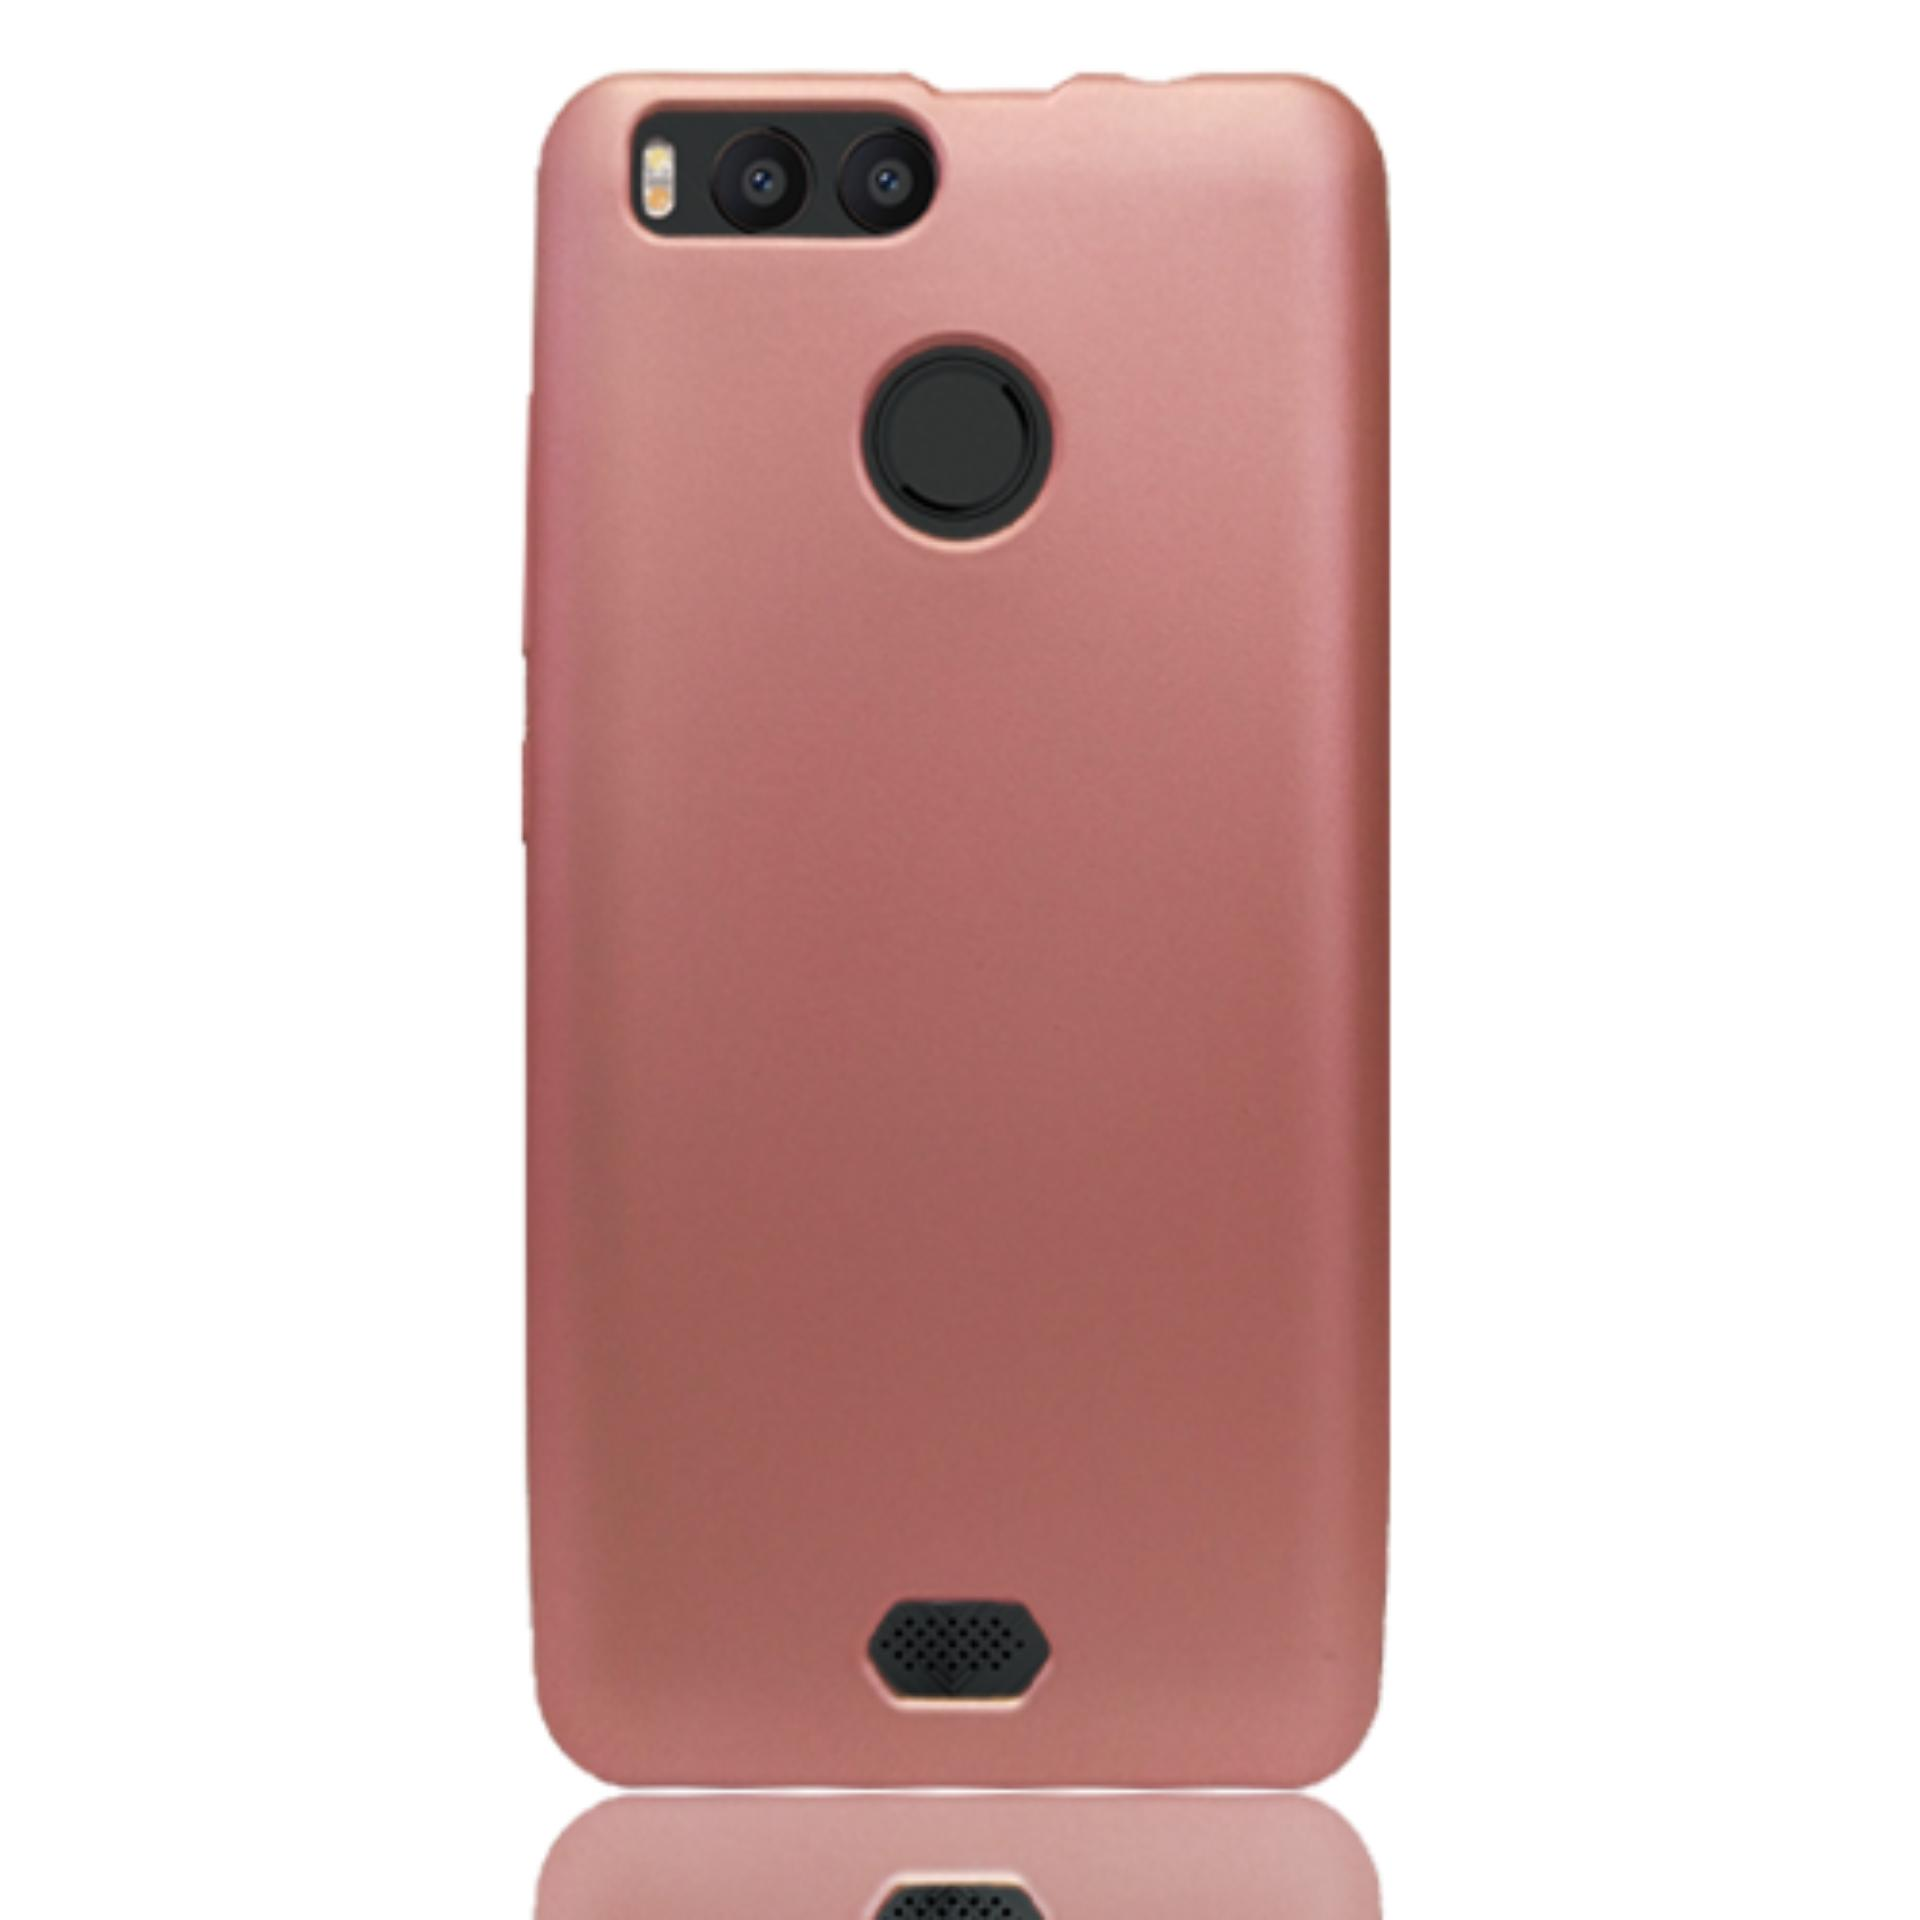 Case softcase Advan vandroid i5C duo rose gold